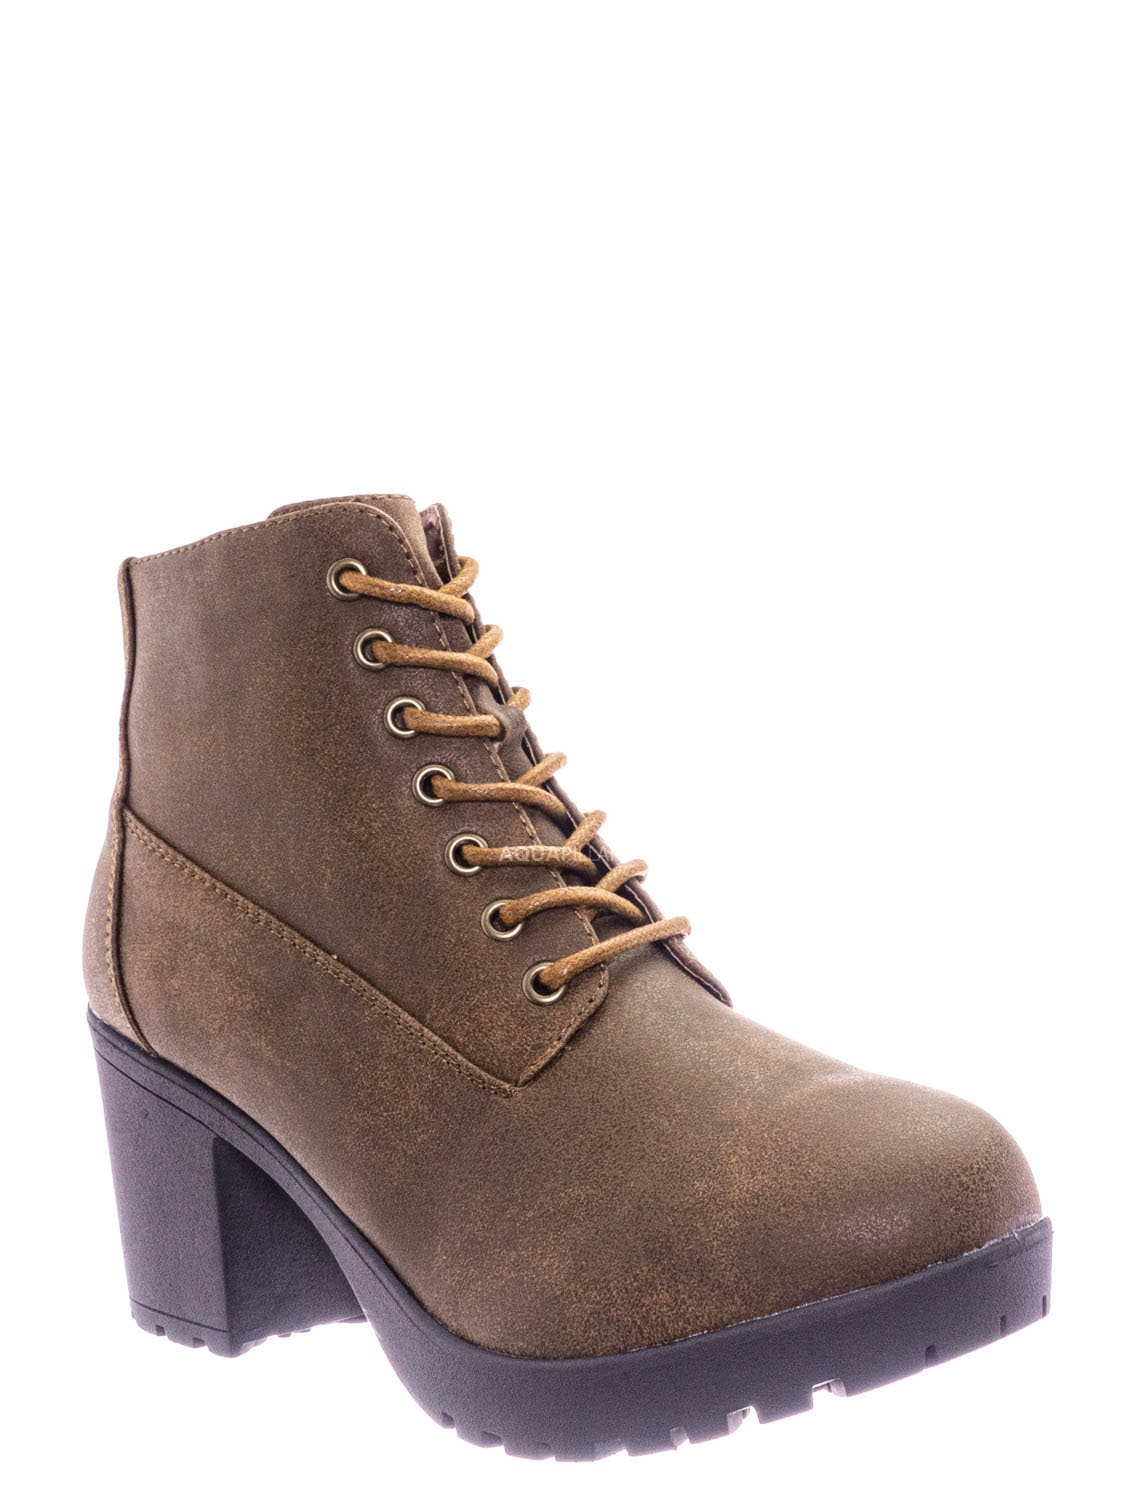 Women/'s Round-Toe Wedge Heel Ankle Booties By Forever Paola-90